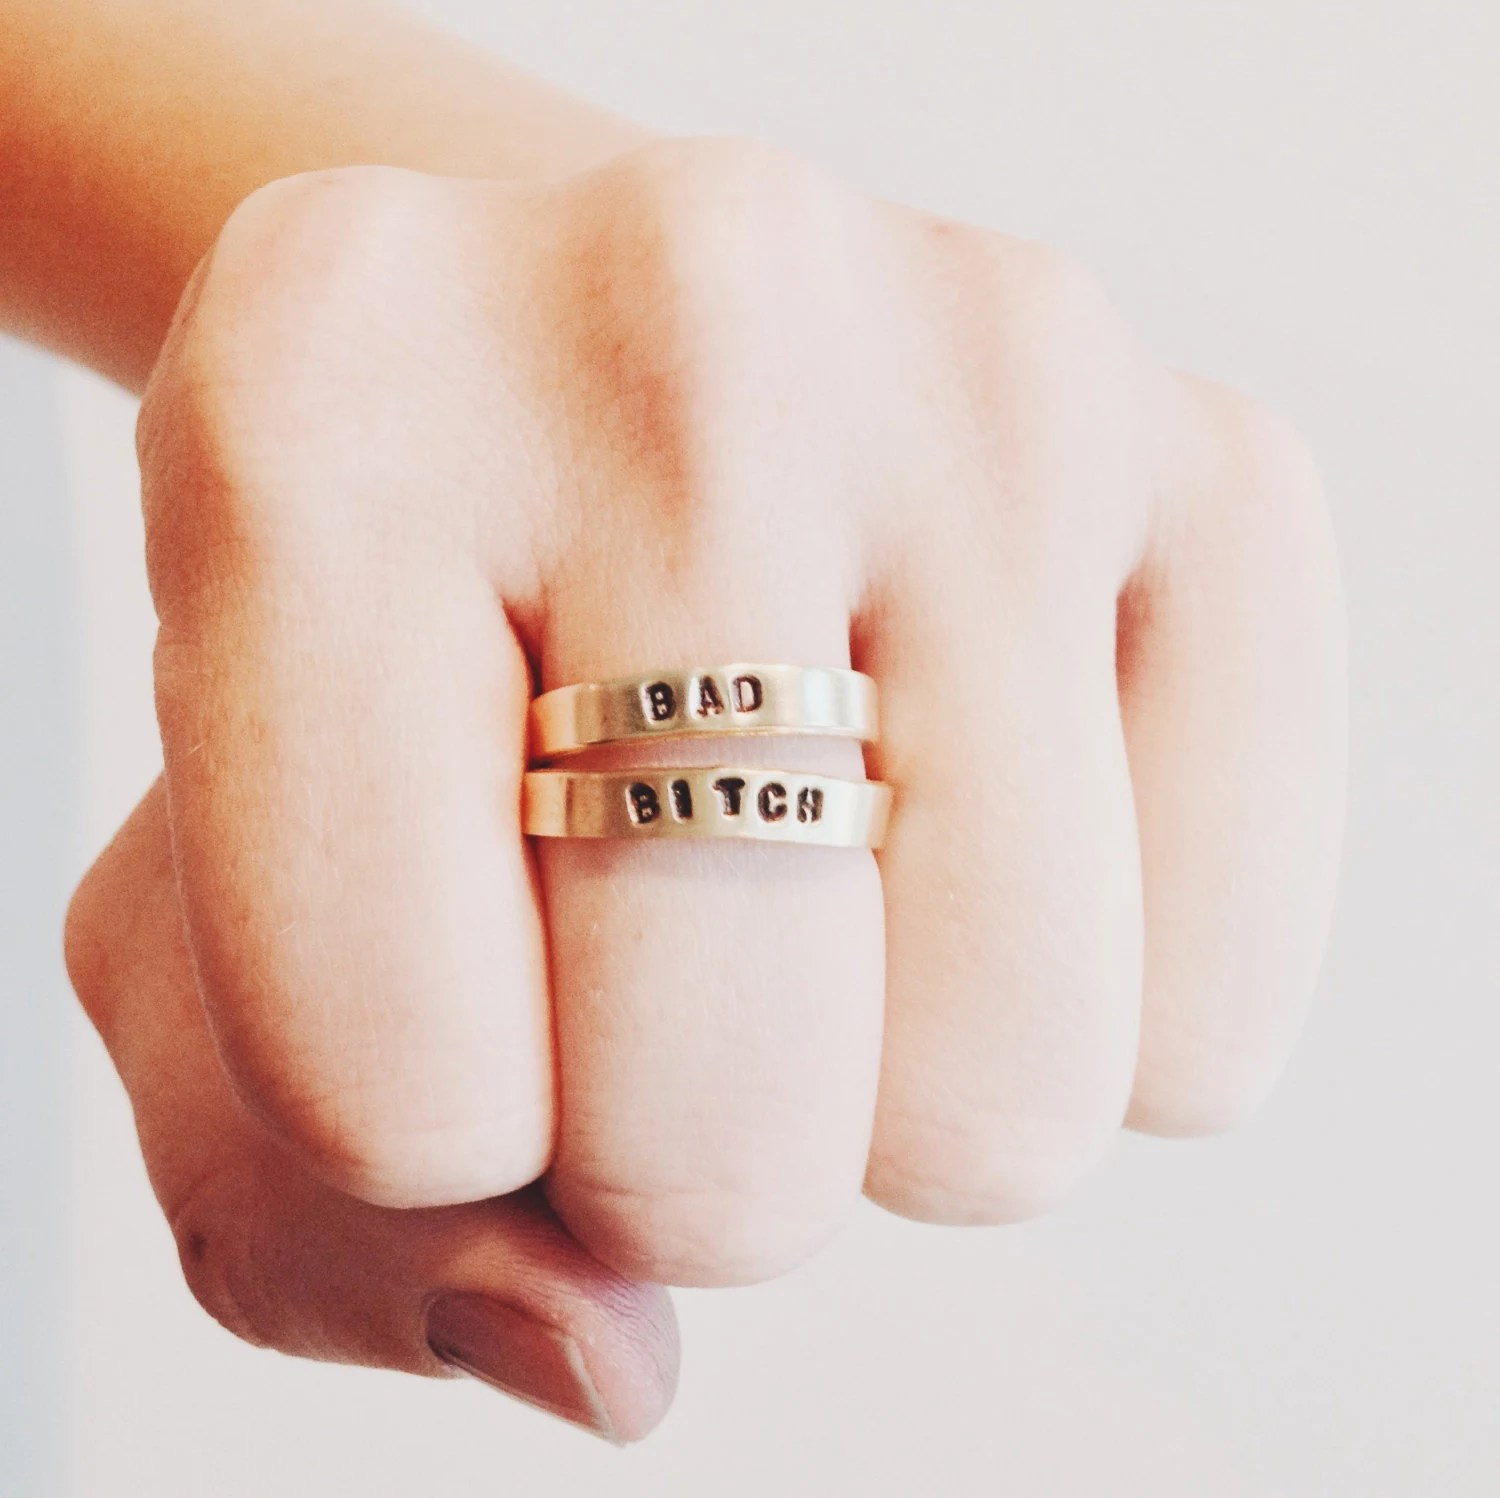 bad bitch stackable rings wedding badass wedding rings Bad Bitch Stackable Rings Initials Mantra BFF Bridesmaid Feminist Badass Nasty Woman Birthday Handstamped Skinny Ring Set